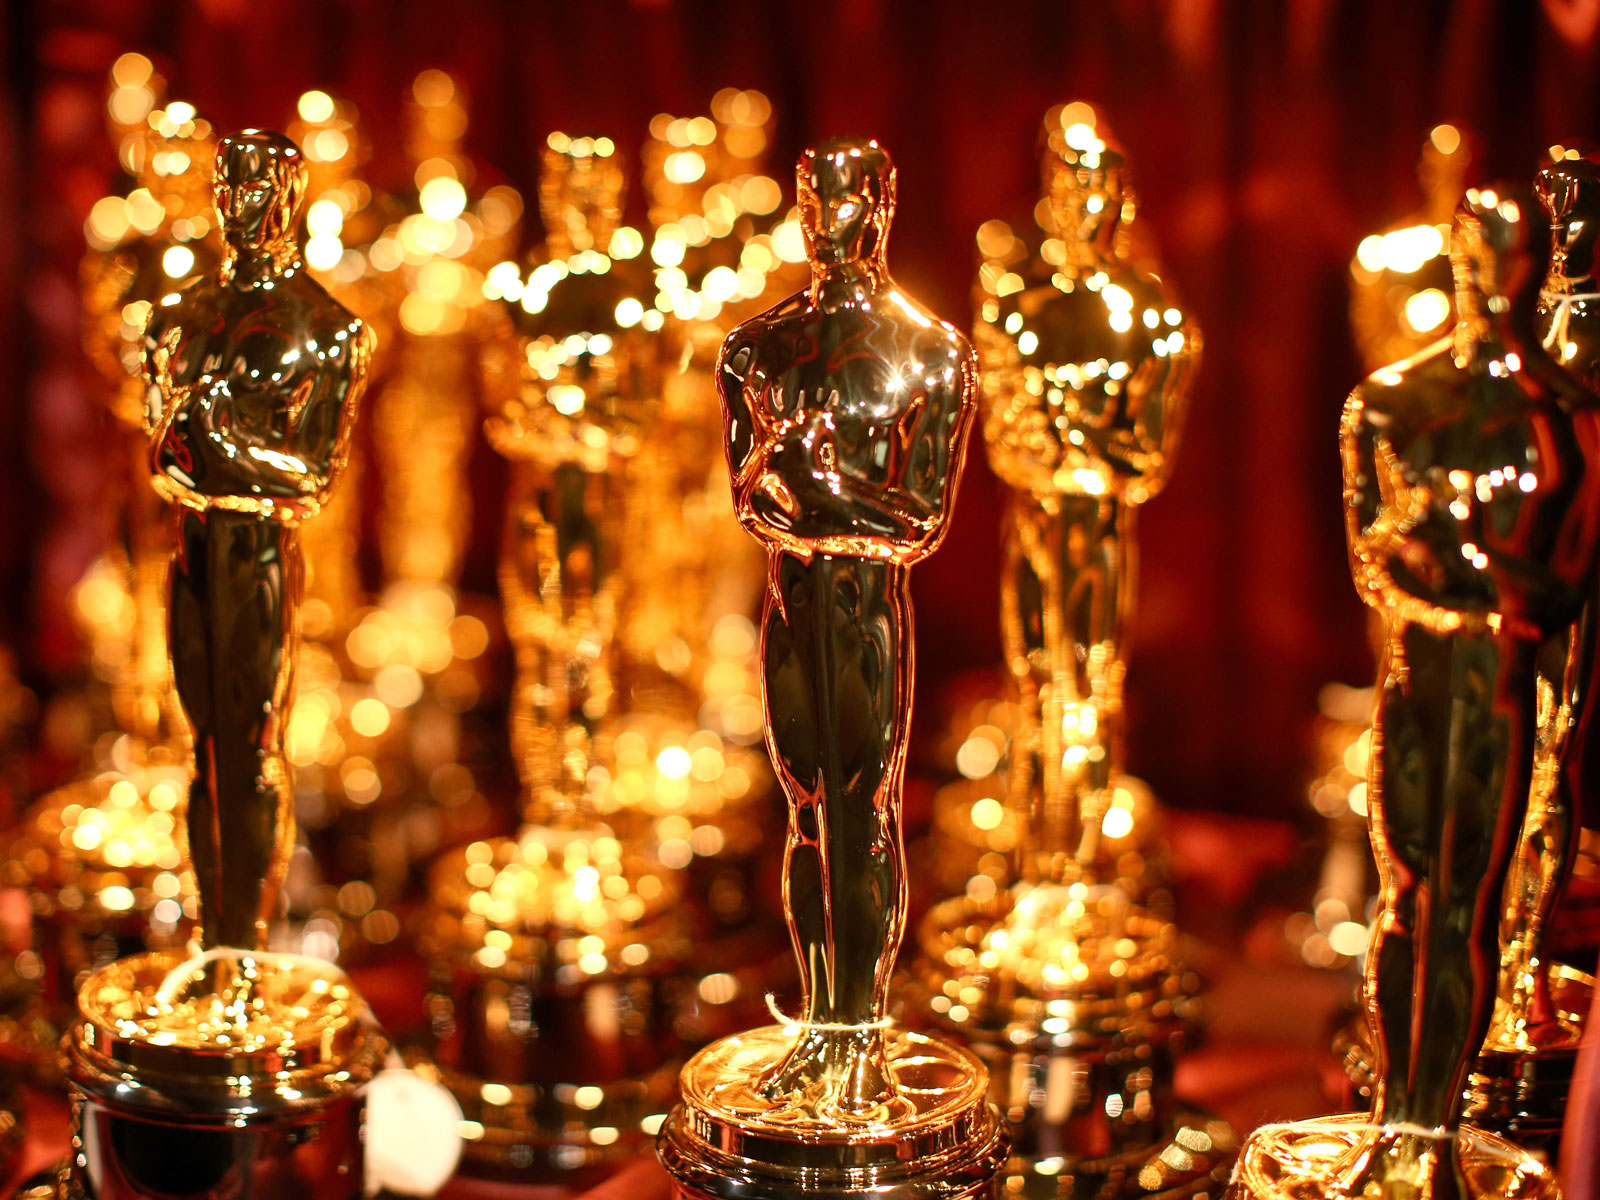 oscar-best-picture-dishes-FT-BLOG0218.jpg